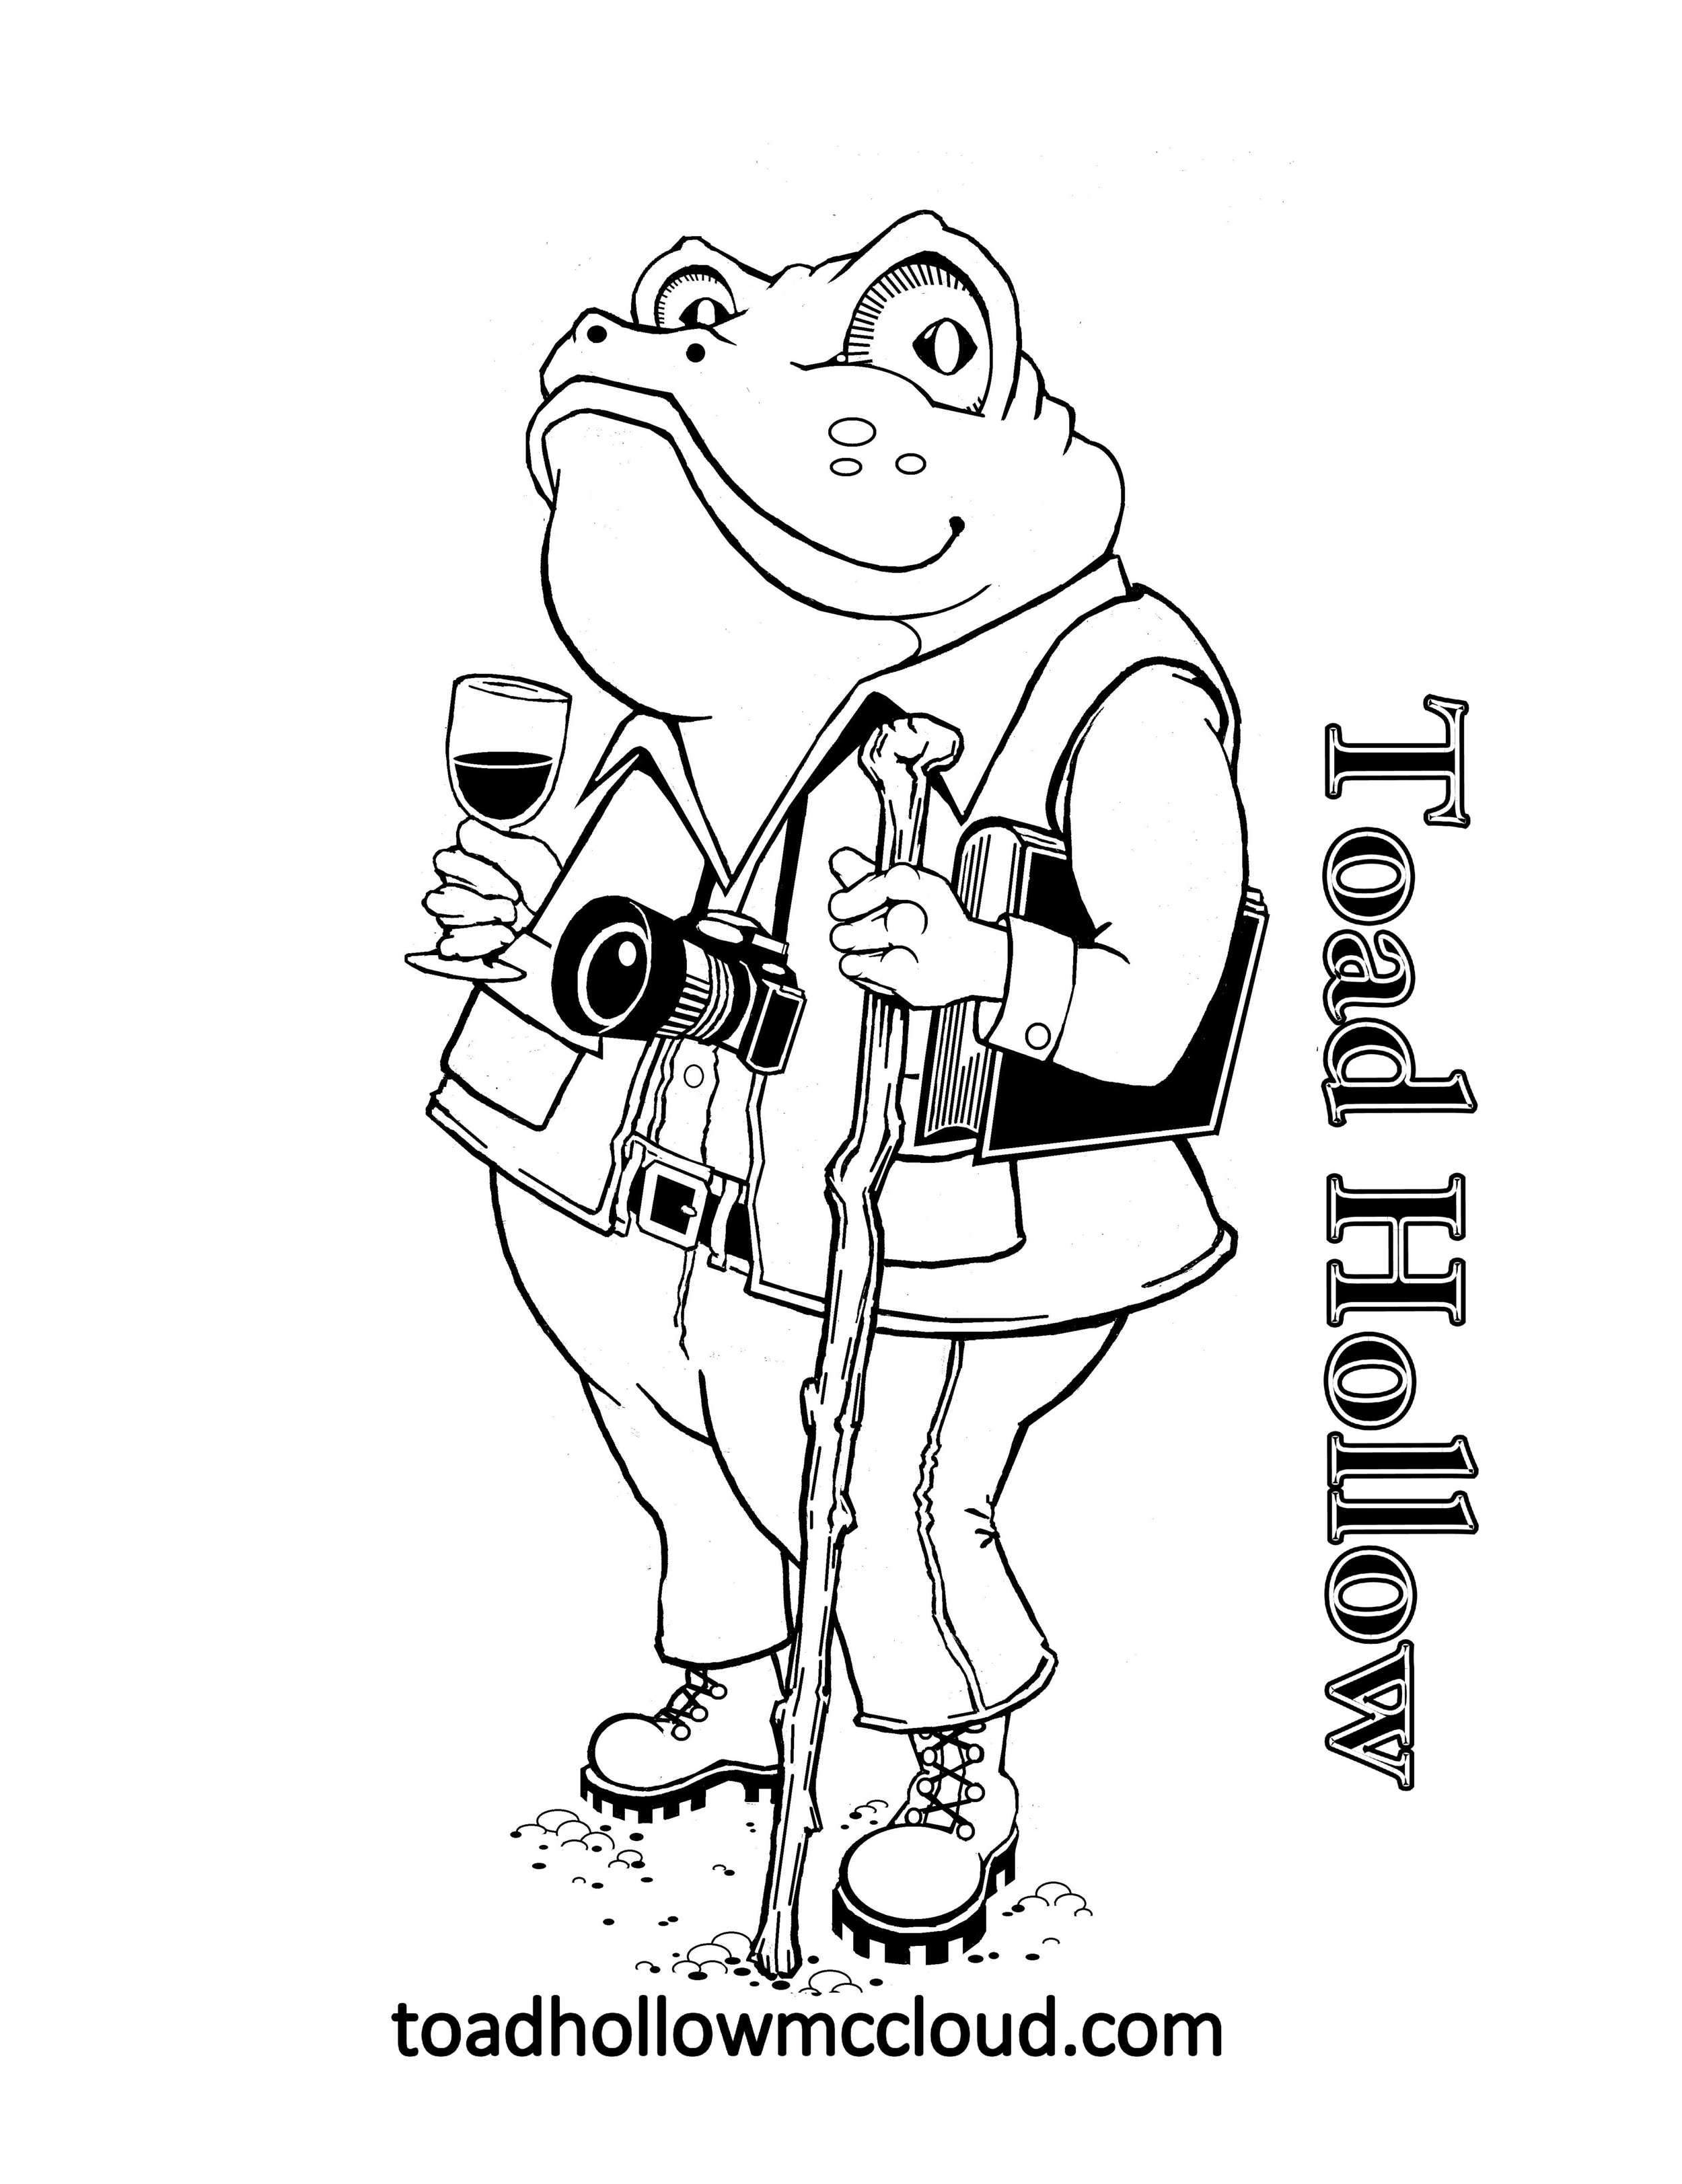 ToadHollowVacationHome.png